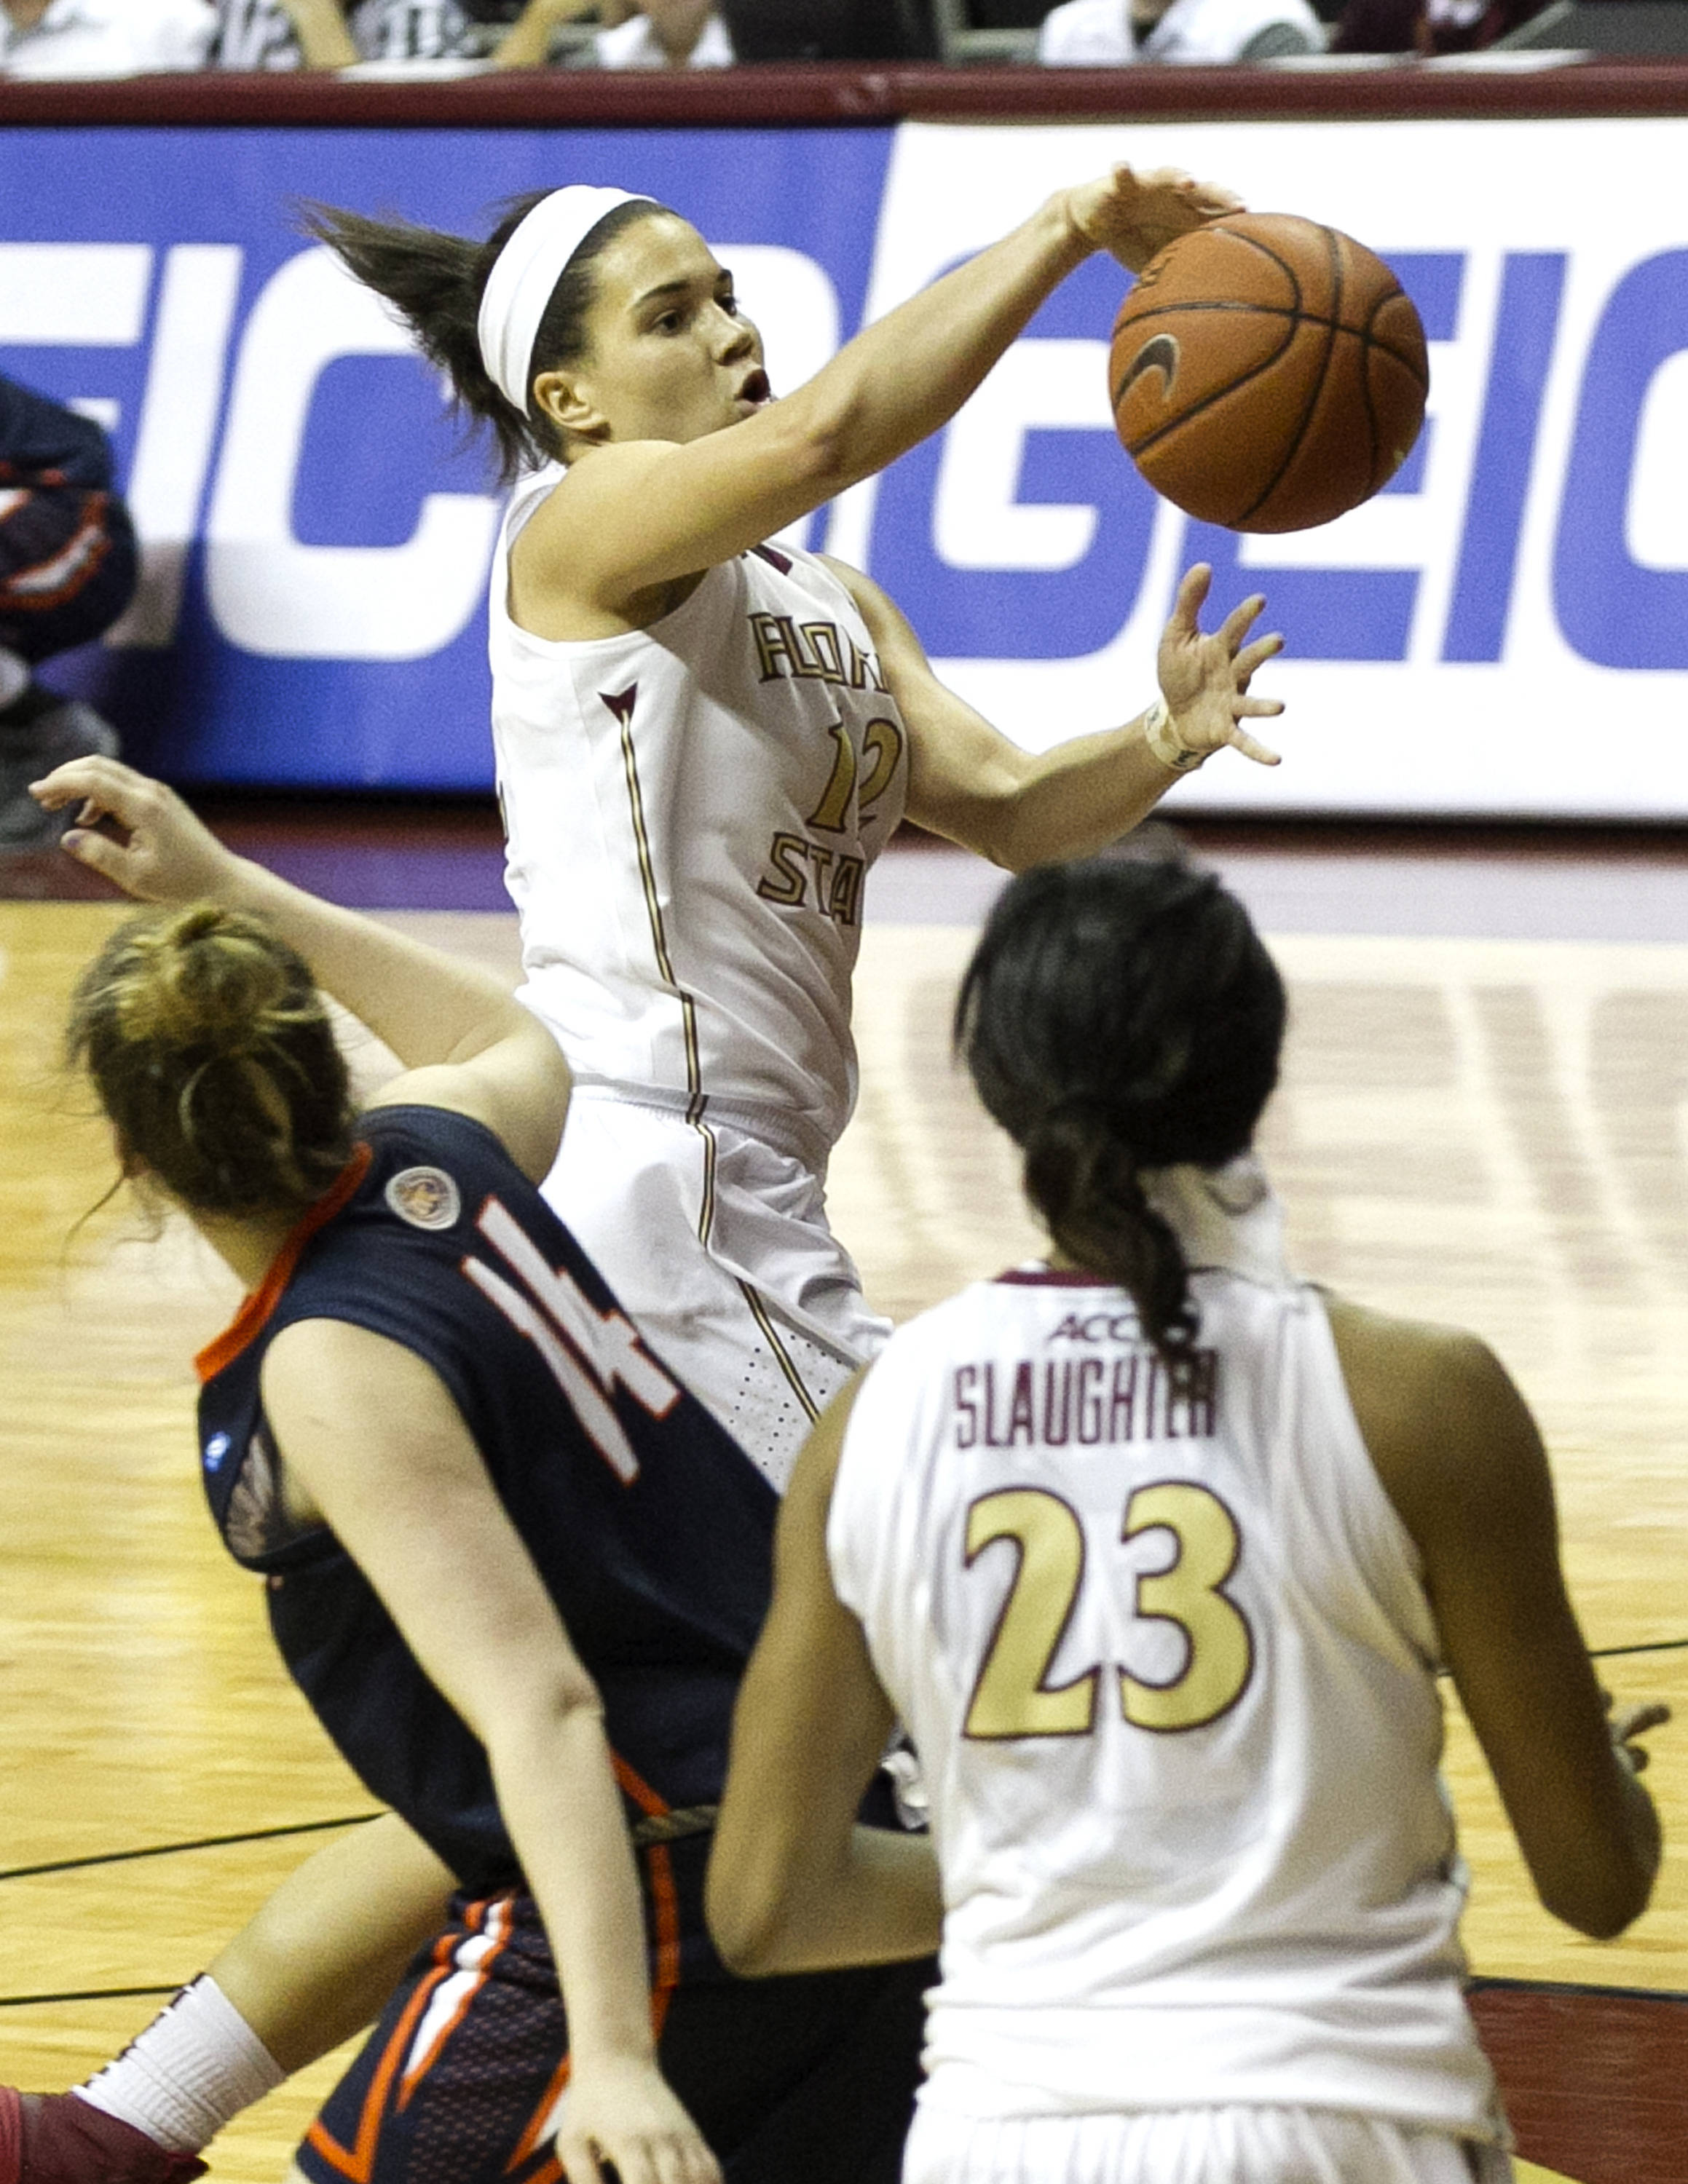 Brittany Brown (12) with a pass in the paint leading to an assist to Ivey Slaughter (23), FSU vs UT Martin, 12-28-13,  (Photo by Steve Musco)